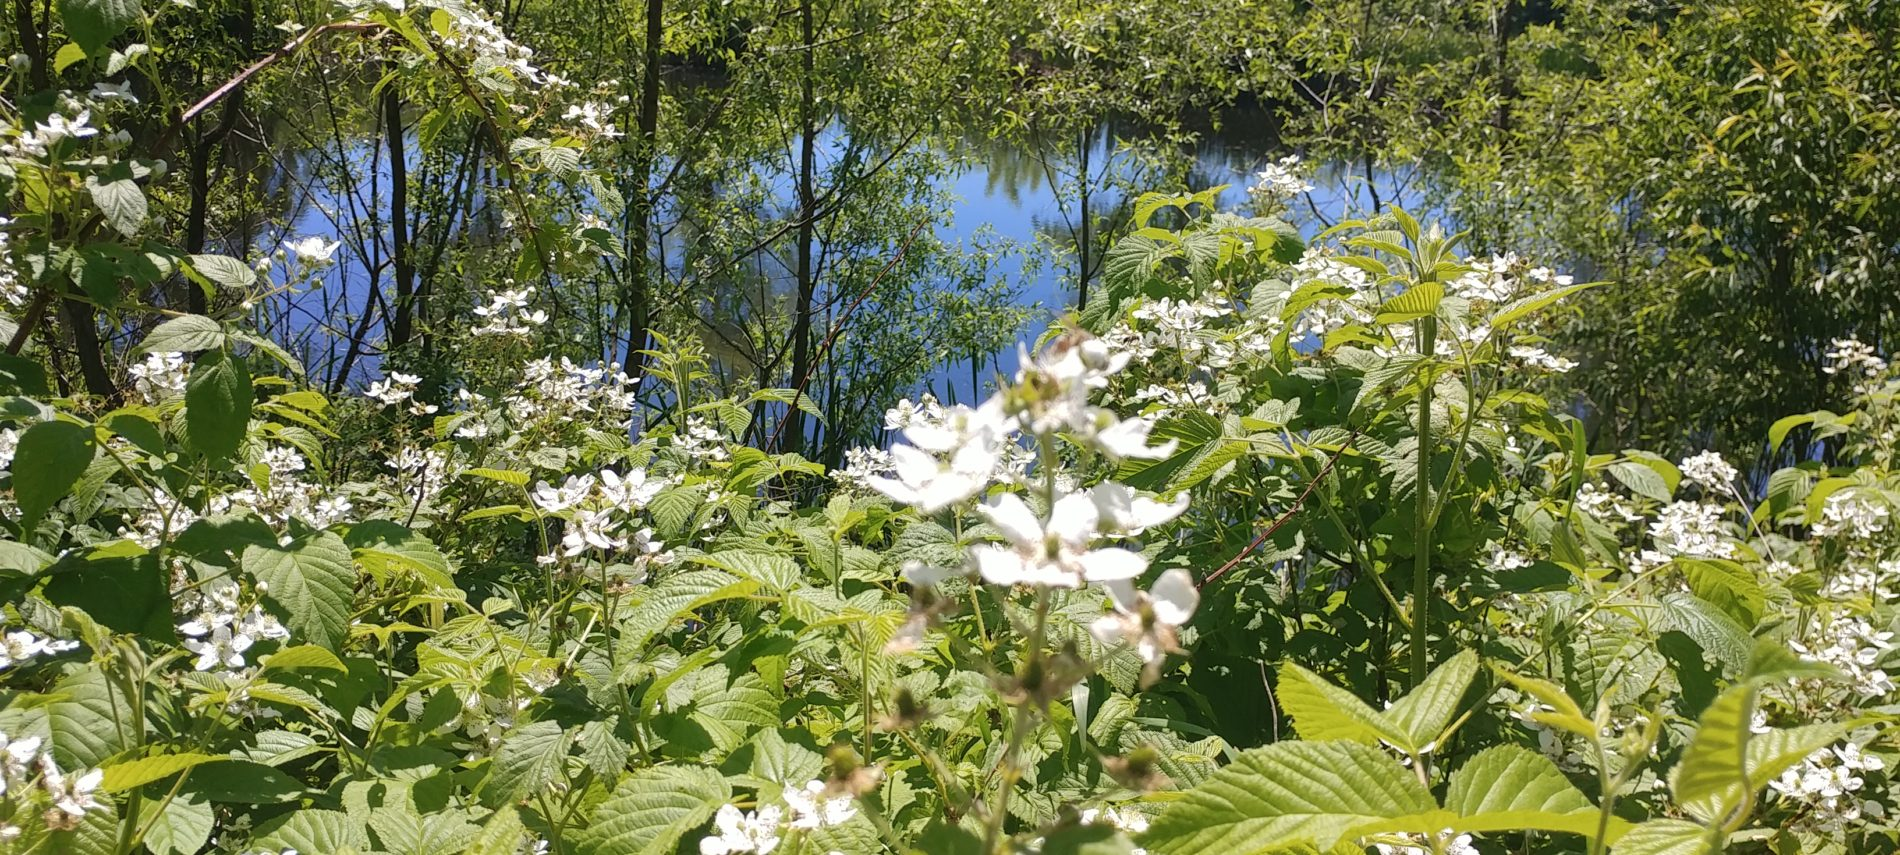 white flowering bushes surround the pond at the Chesterfield Inn